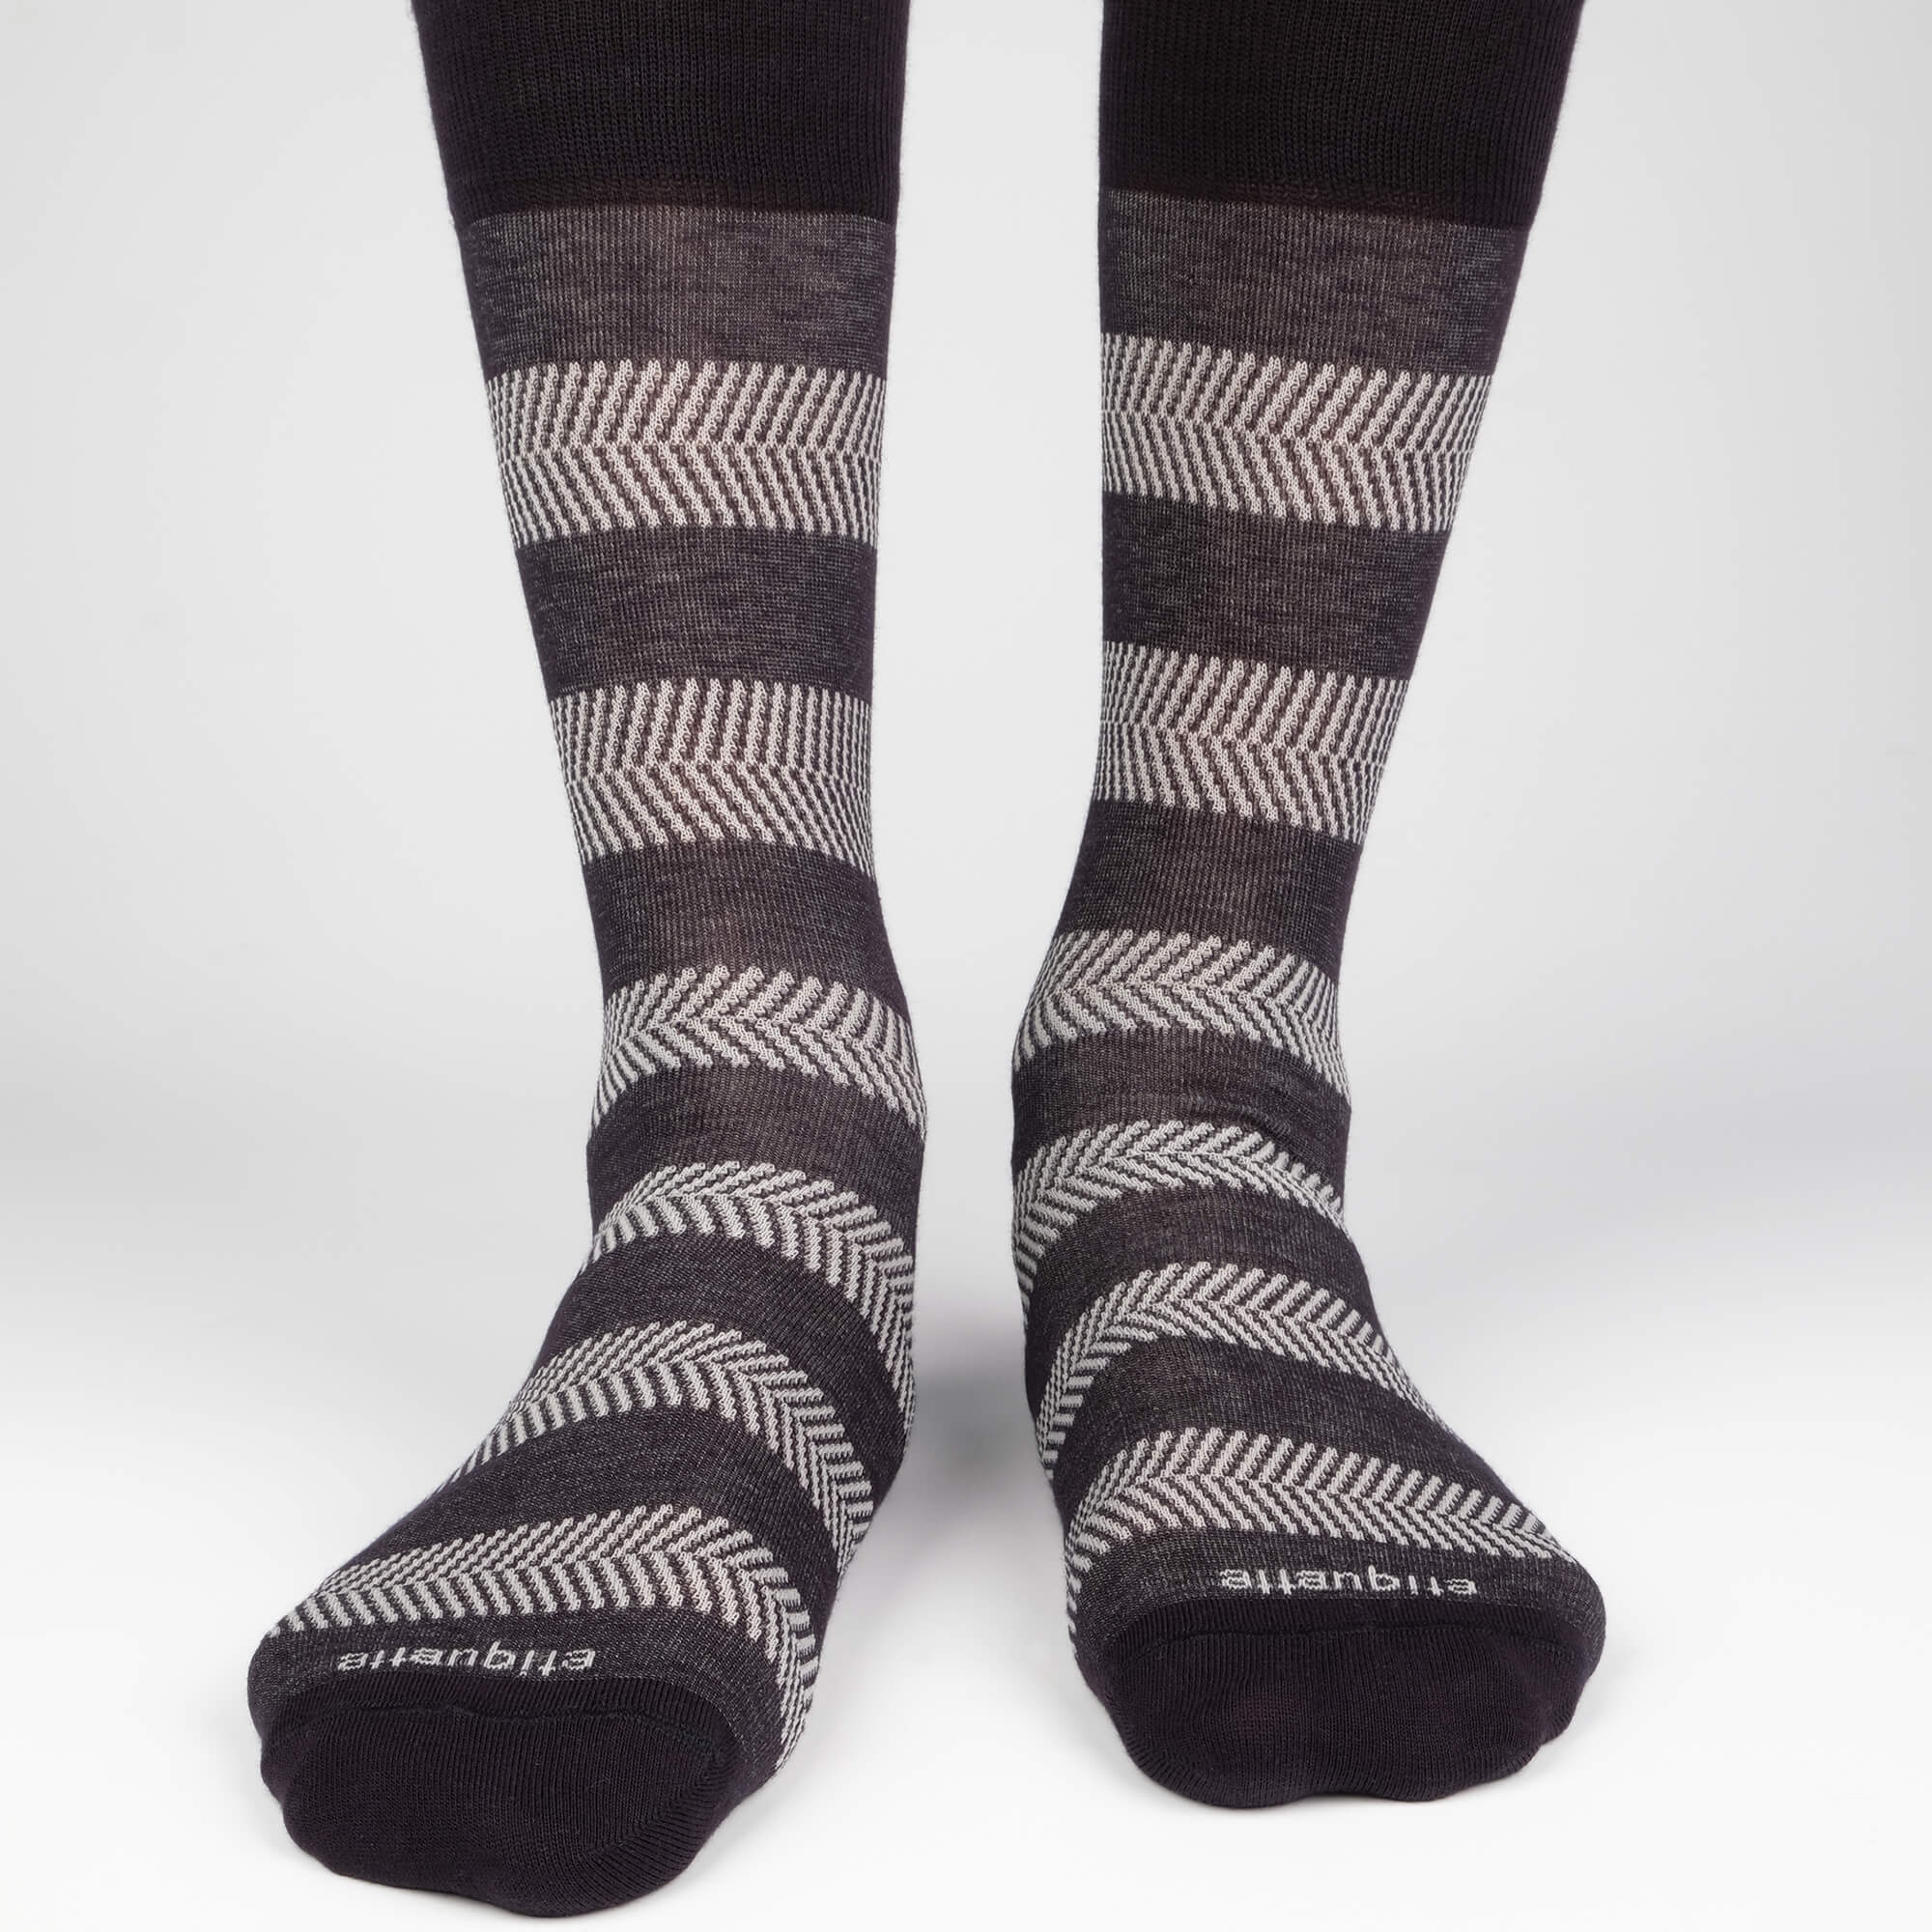 Herringbone Stripes - Black - Mens Socks | Etiquette Clothiers Global Official